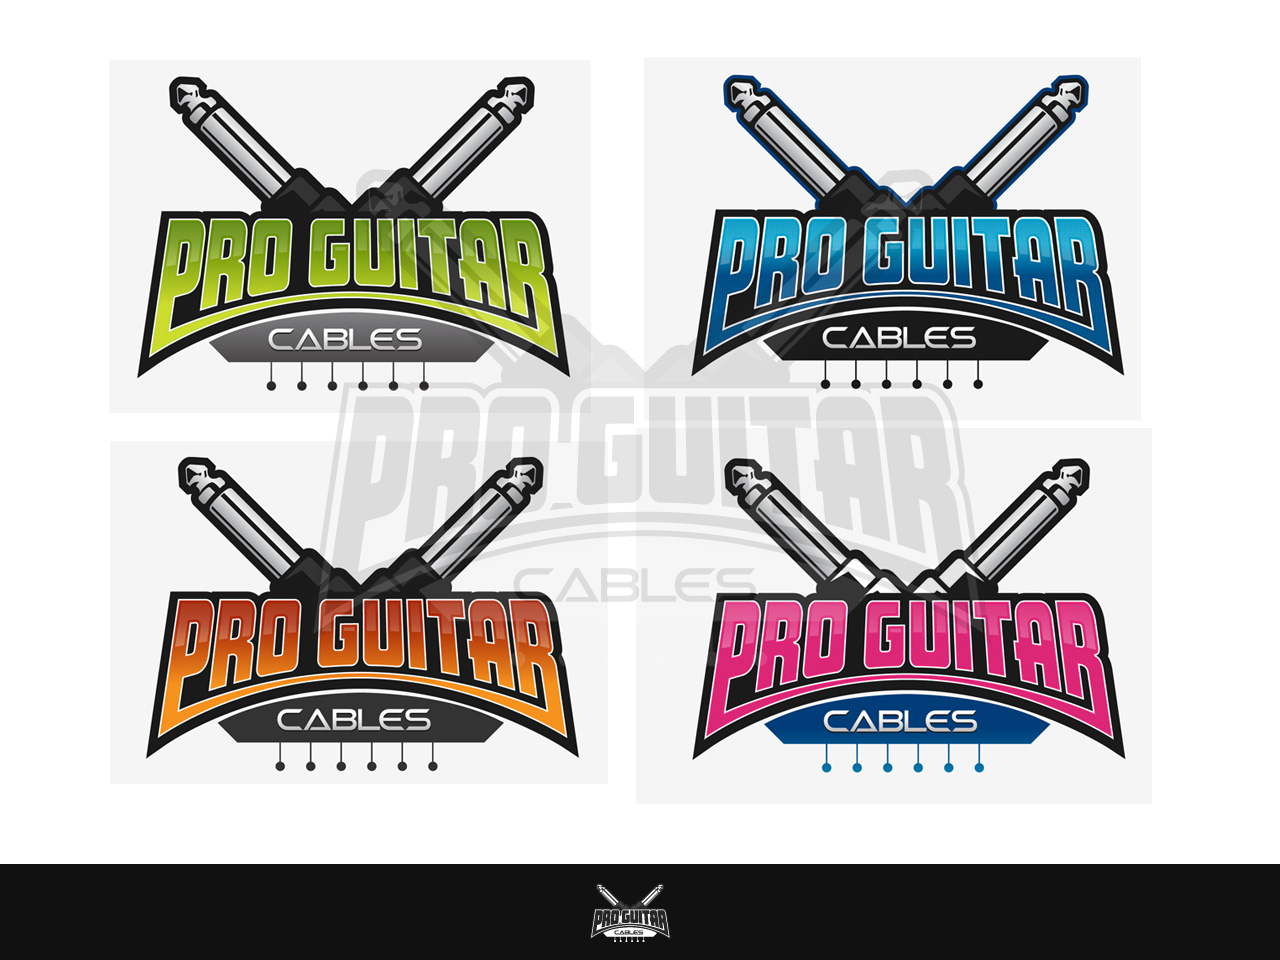 Logo Design by jpbituin - Entry No. 87 in the Logo Design Contest Pro Guitar Cables Logo Design.